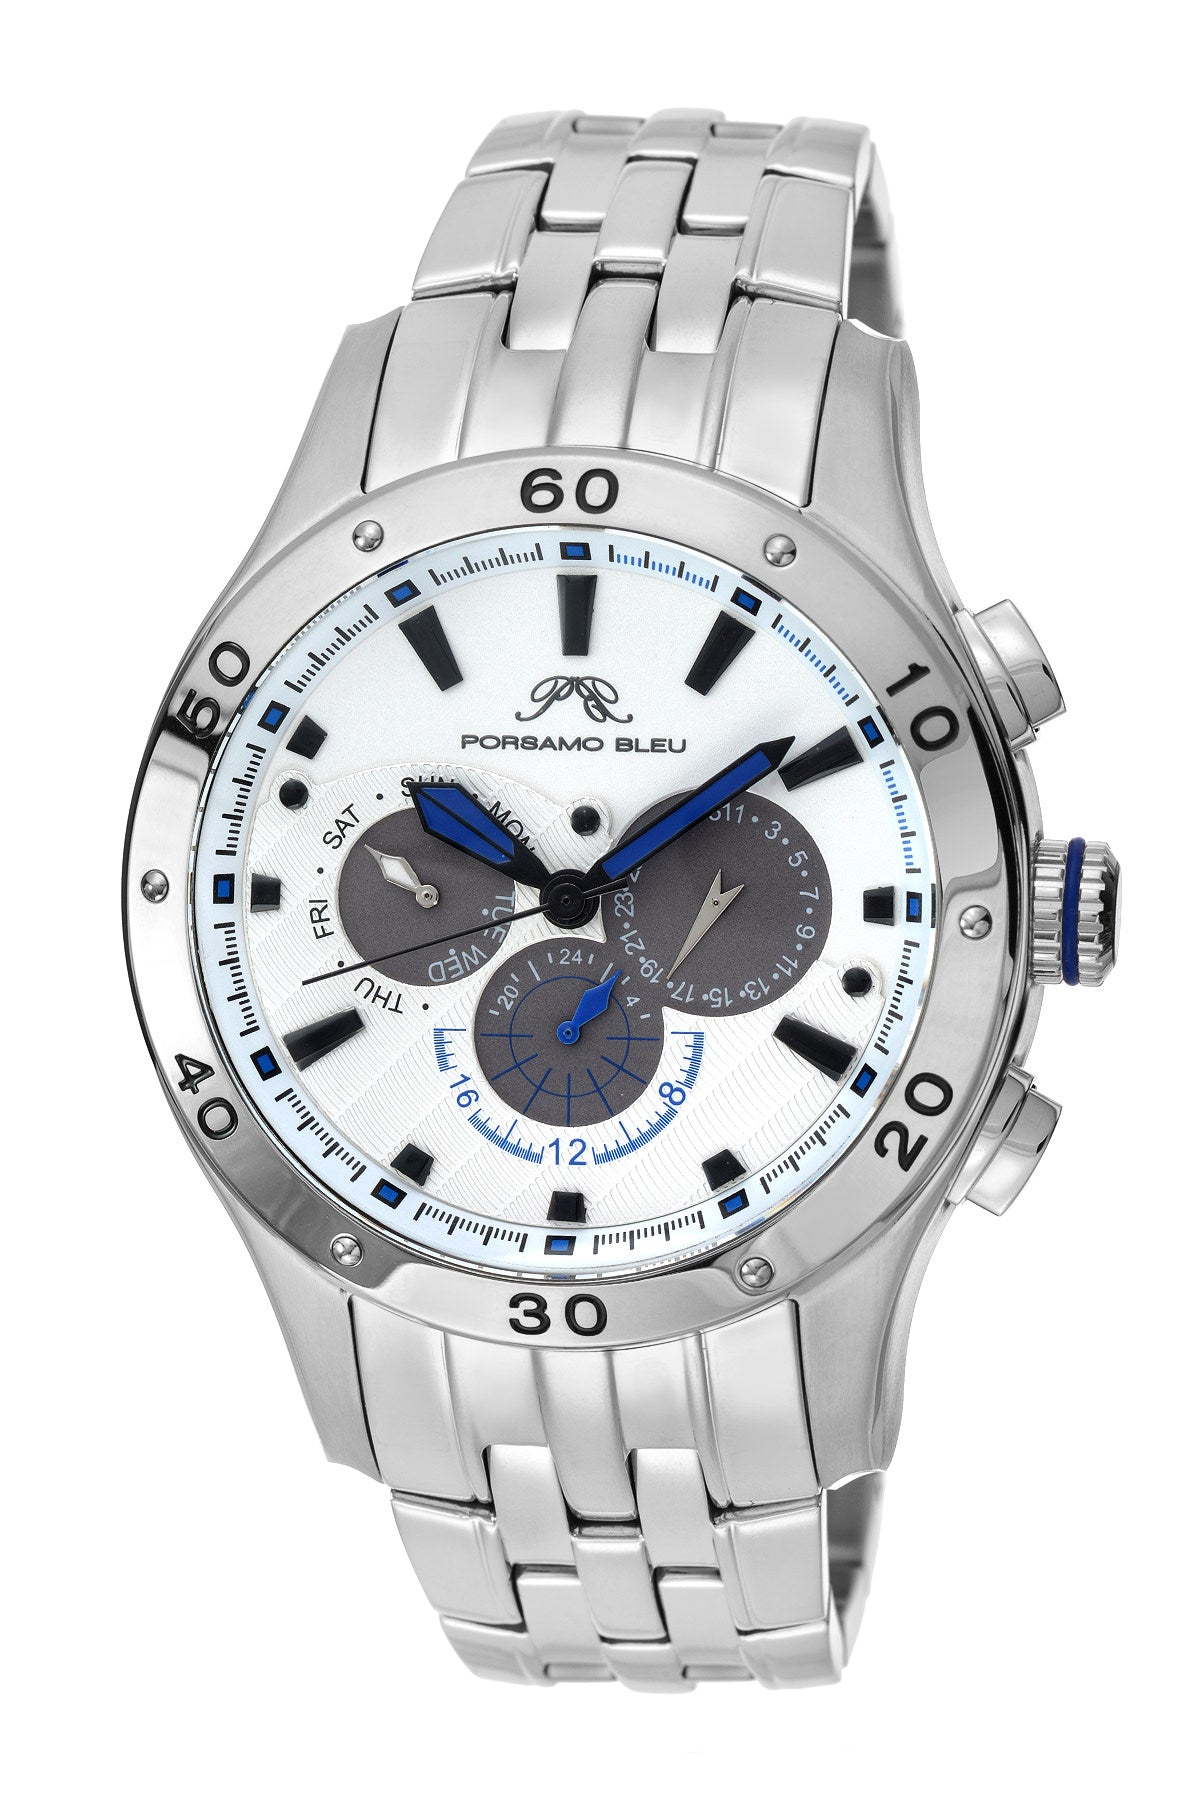 Porsamo Bleu, Andre luxury men's stainless steel watch, silver, white 221AANS